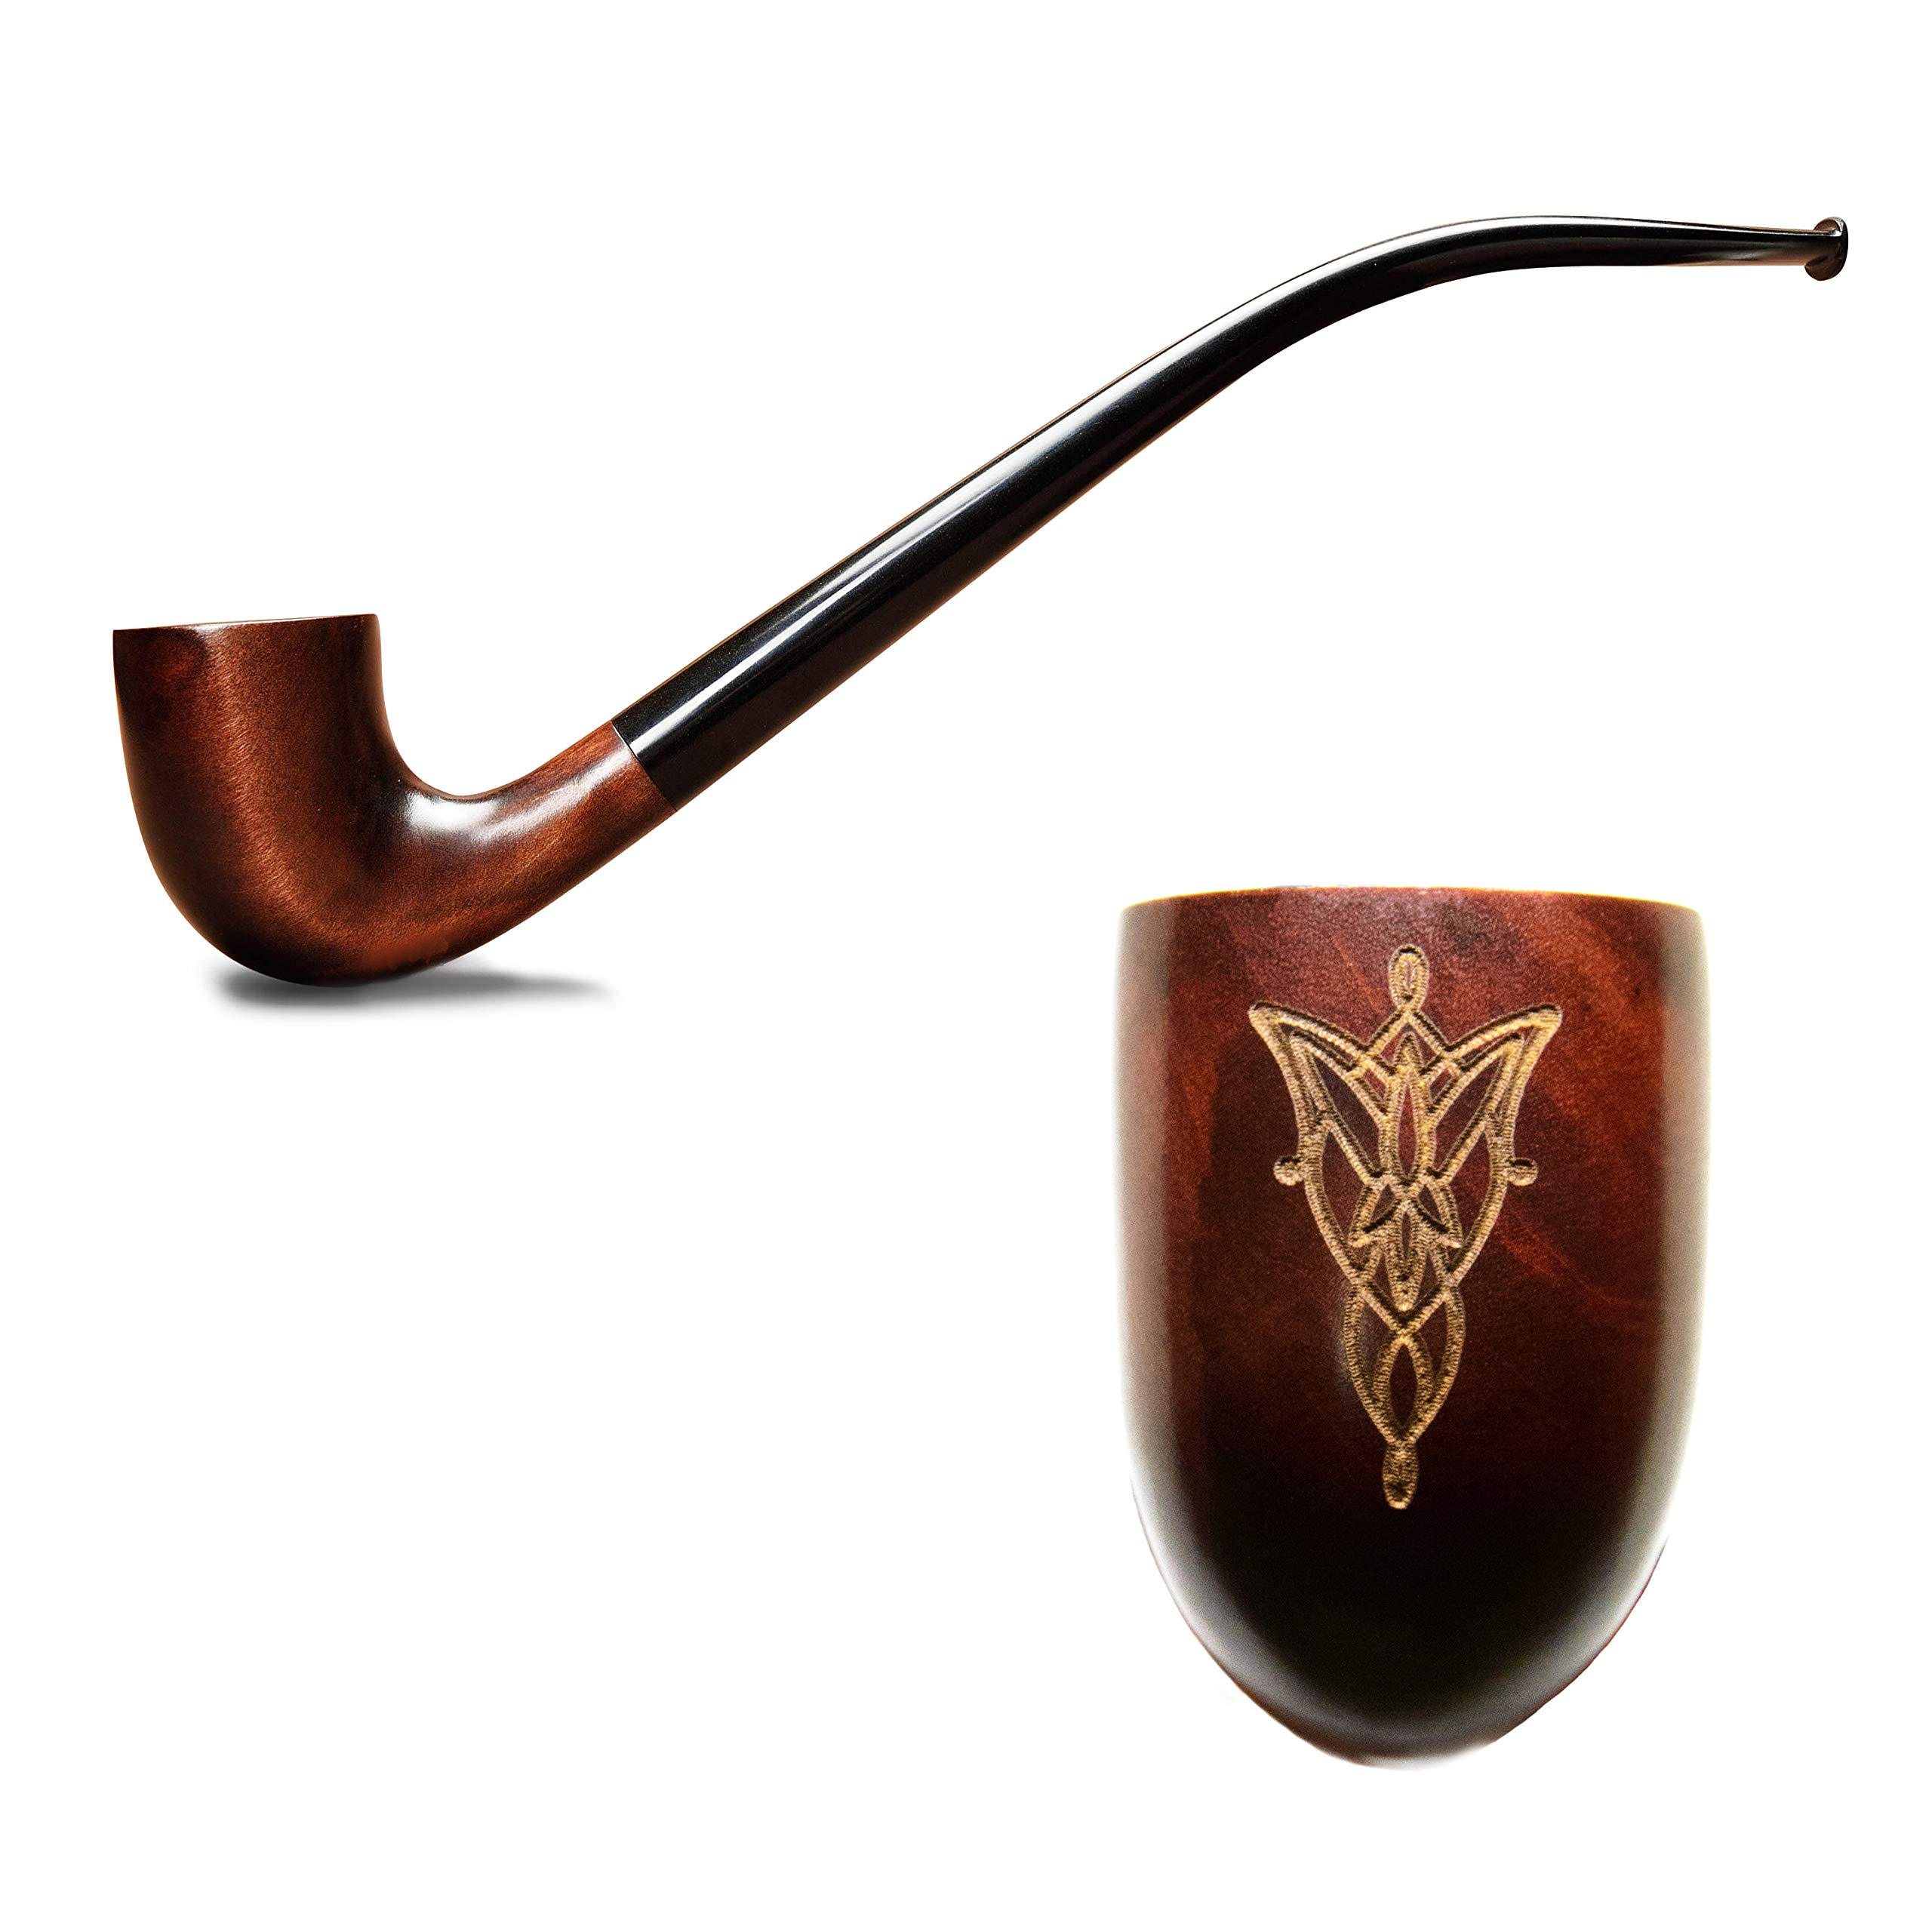 Tobacco pipe engraved with Evenstar from Lord of the Rings in Gandalf style handmade from pear wood Churchwarden smoking pipe